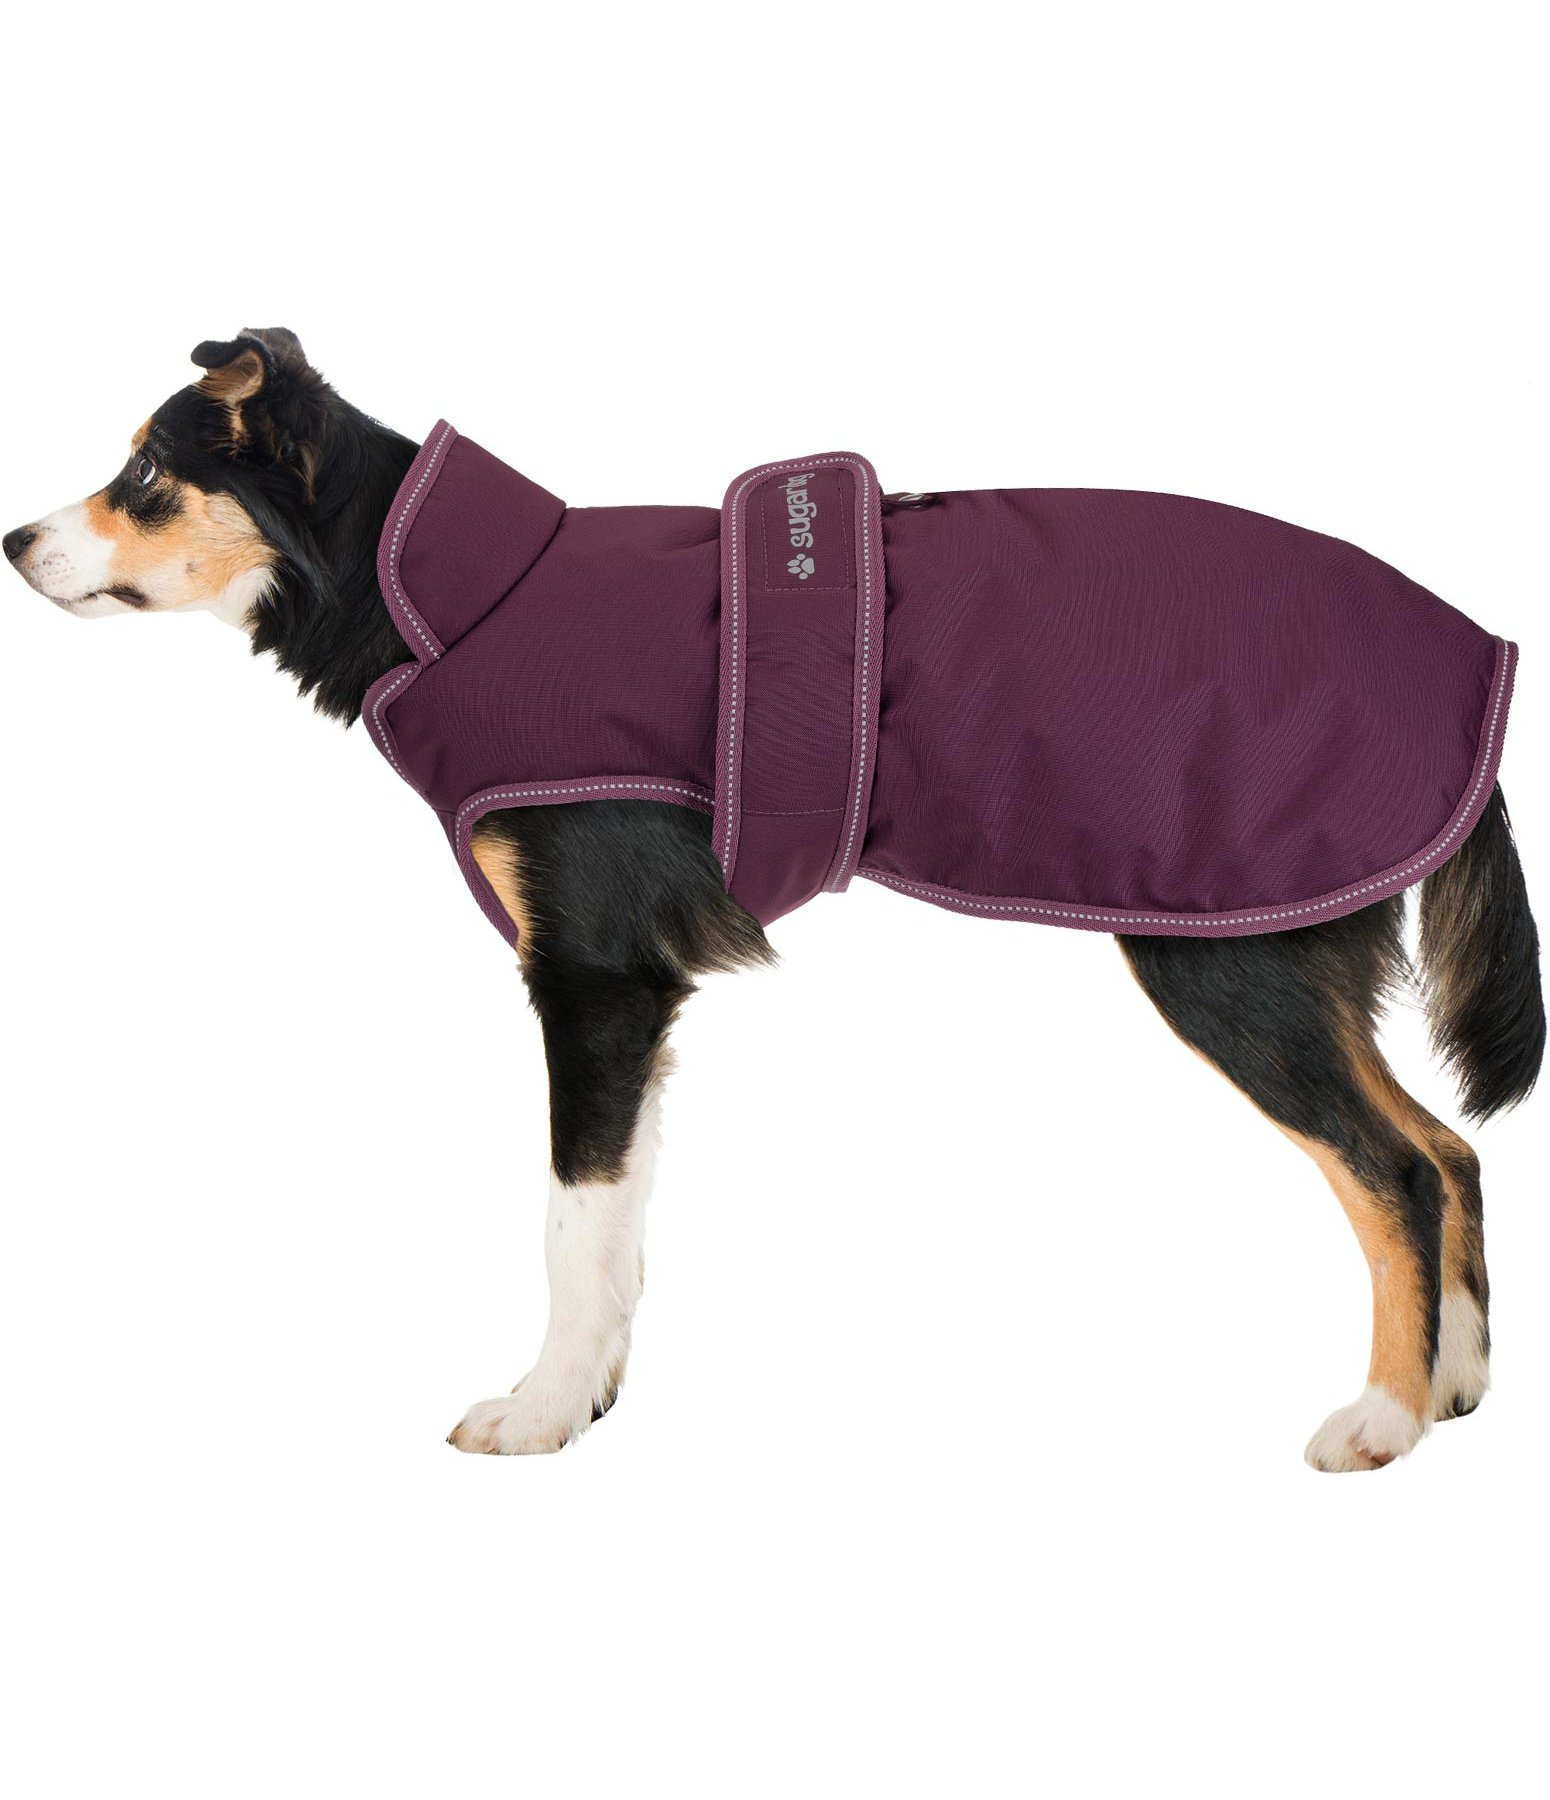 Dog Coat Eddie With Fleece Lining 200 G Kramer Equestrian